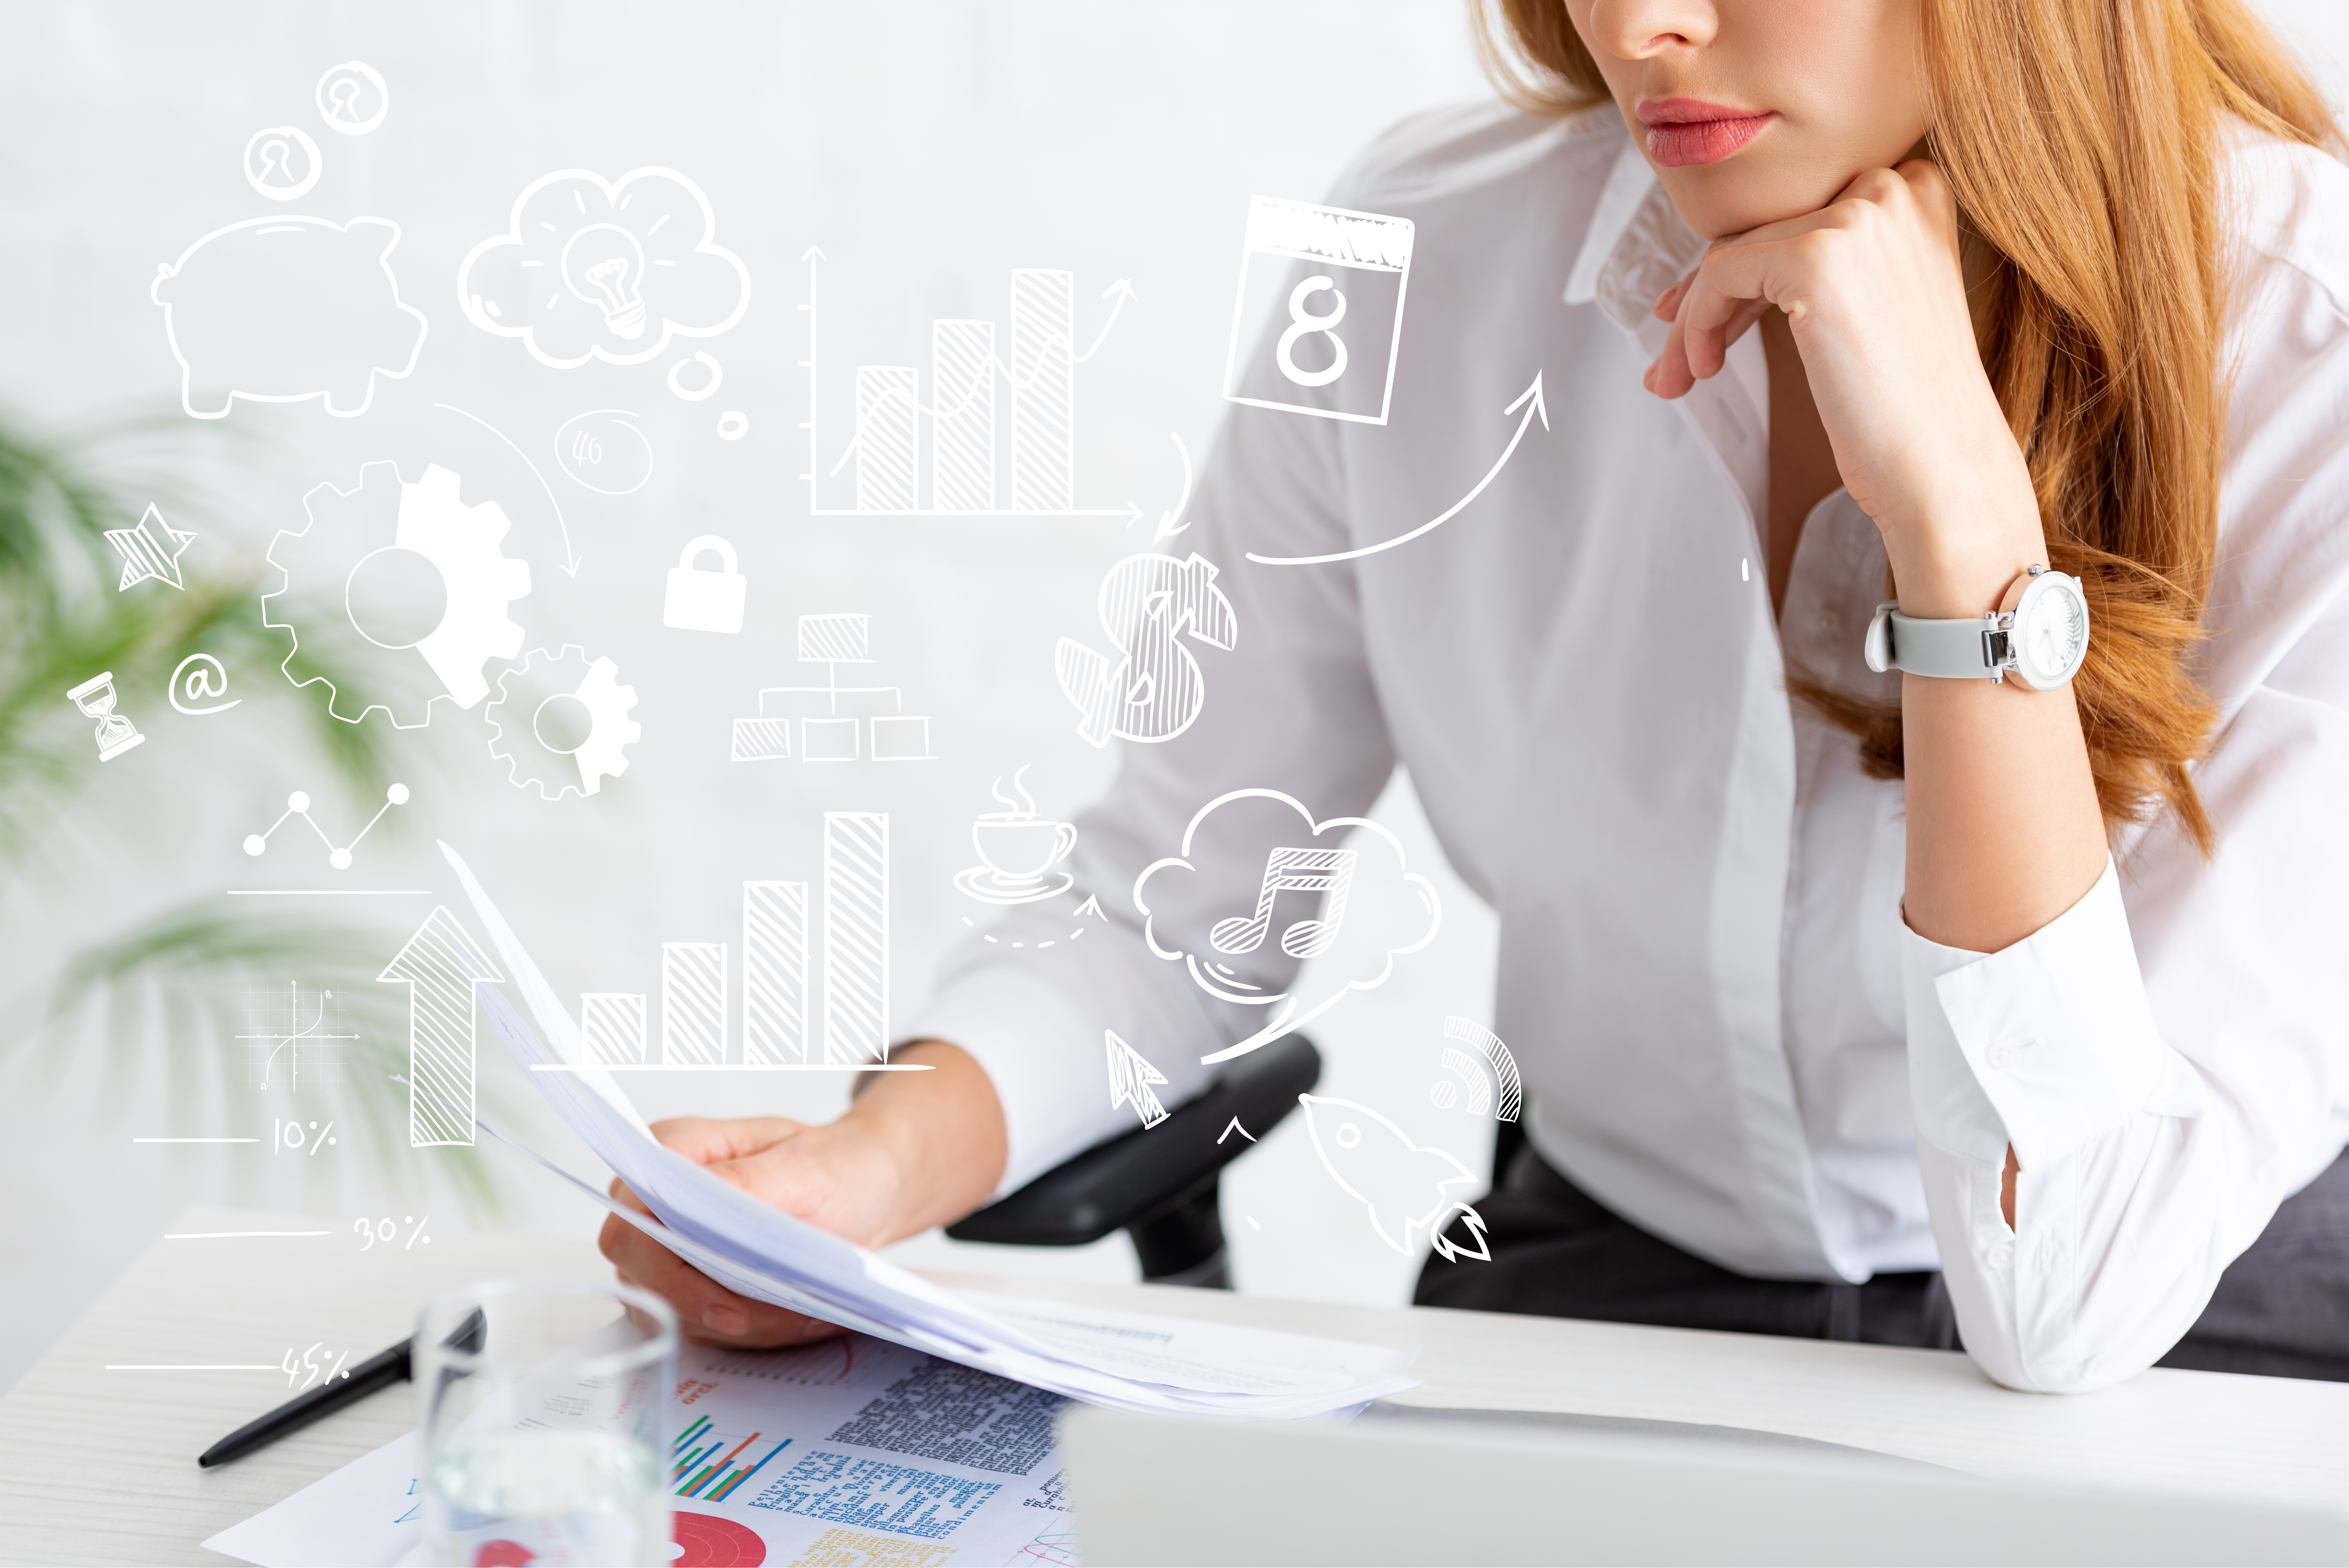 Woman holding paperwork and data, with digital marketing symbols around her hands